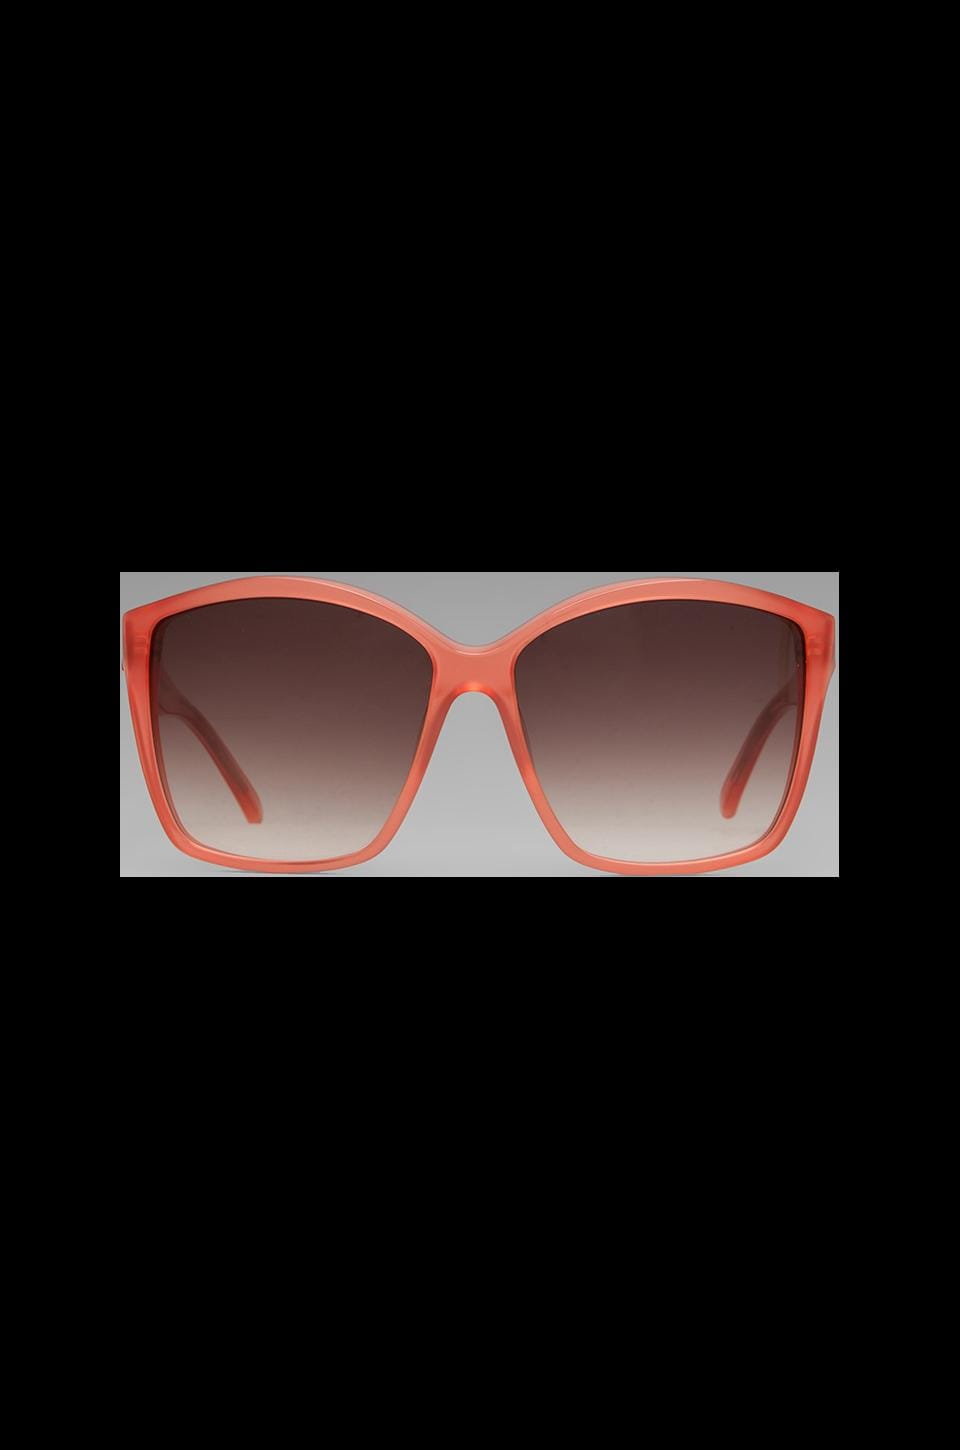 House of Harlow 1960 House of Harlow Jordana Sunglasses in Nectar